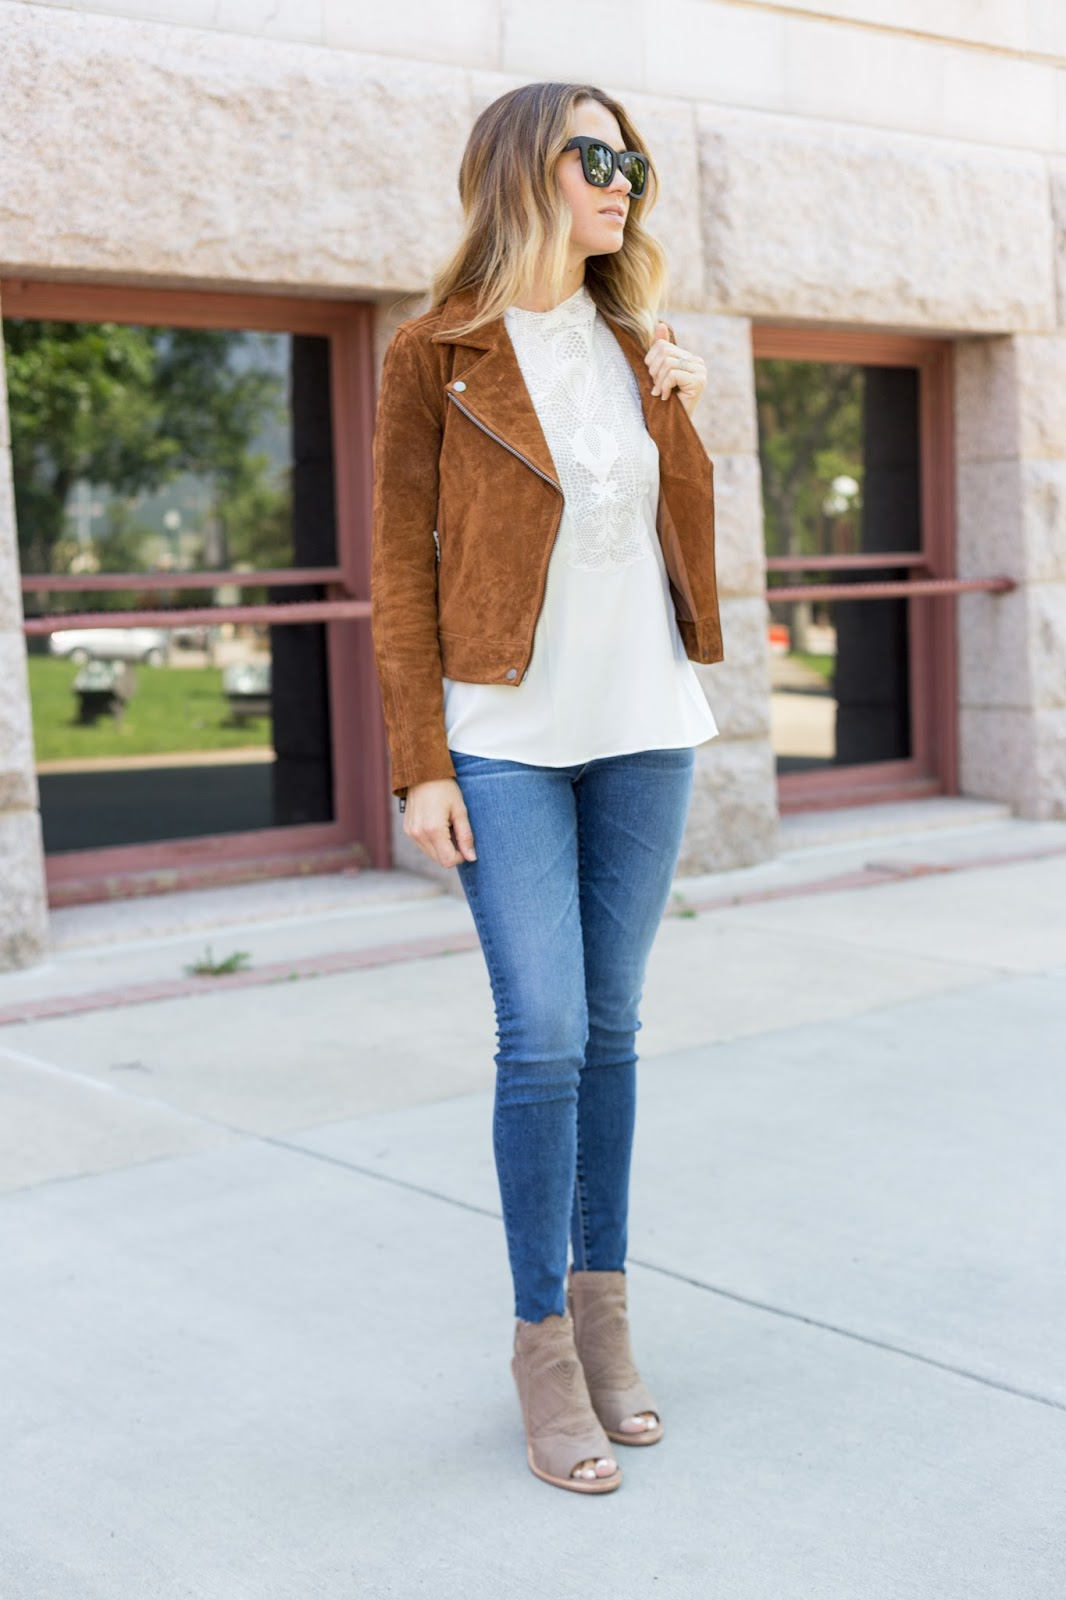 Suede Jacket with Lace Top - The Must Have Brown Suede Jacket For Fall by Colorado fashion blog